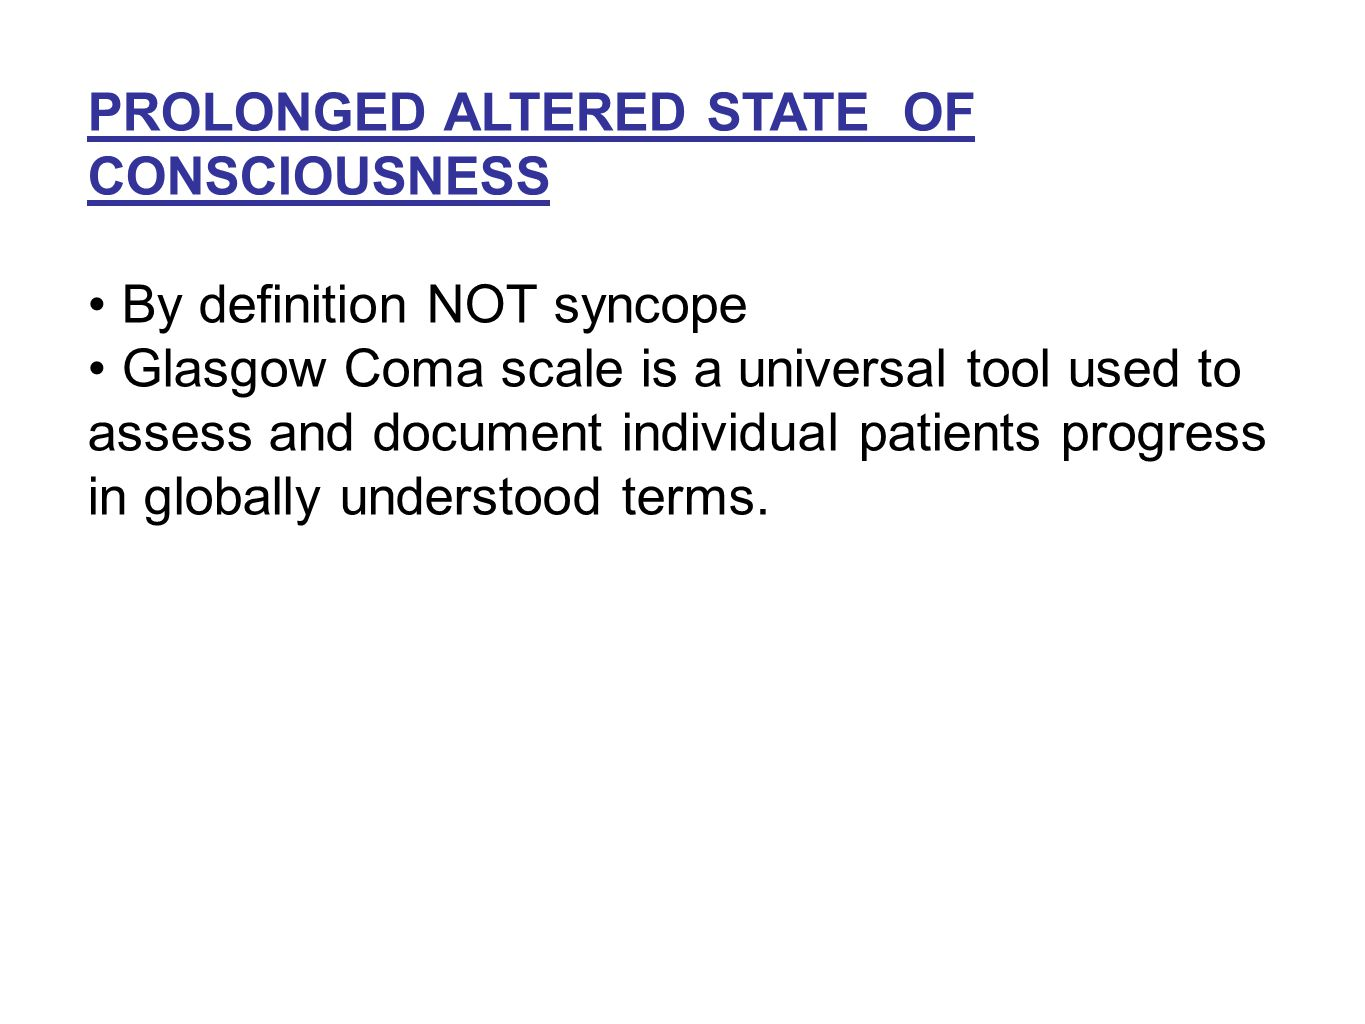 PROLONGED ALTERED STATE OF CONSCIOUSNESS By definition NOT syncope Glasgow Coma scale is a universal tool used to assess and document individual patients progress in globally understood terms.